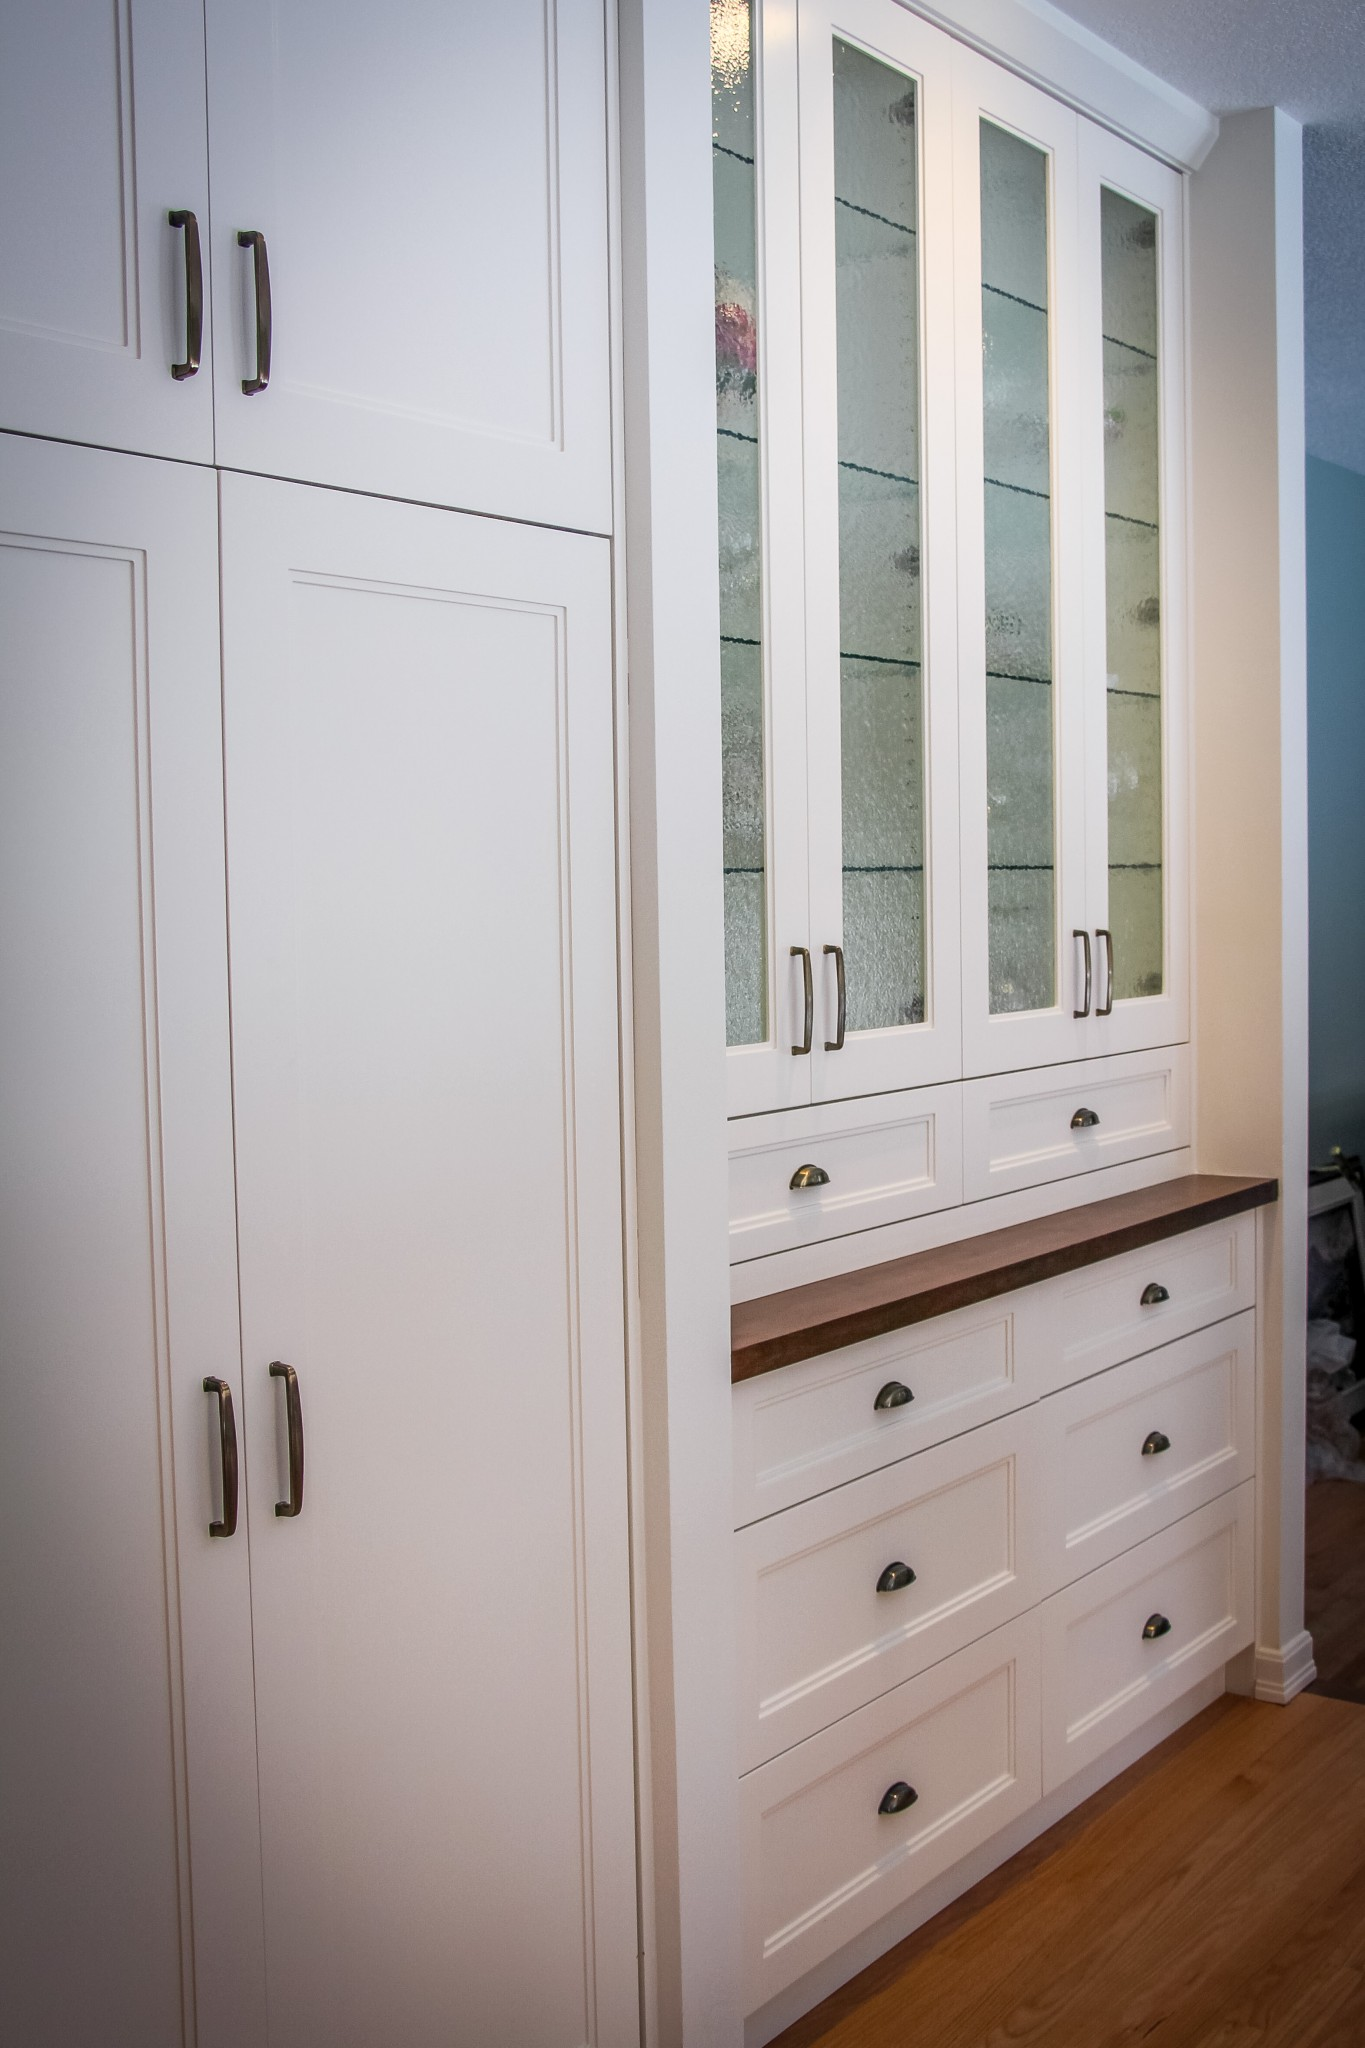 Traditional China storage in a built-in full height cabinet with textured glass doors.